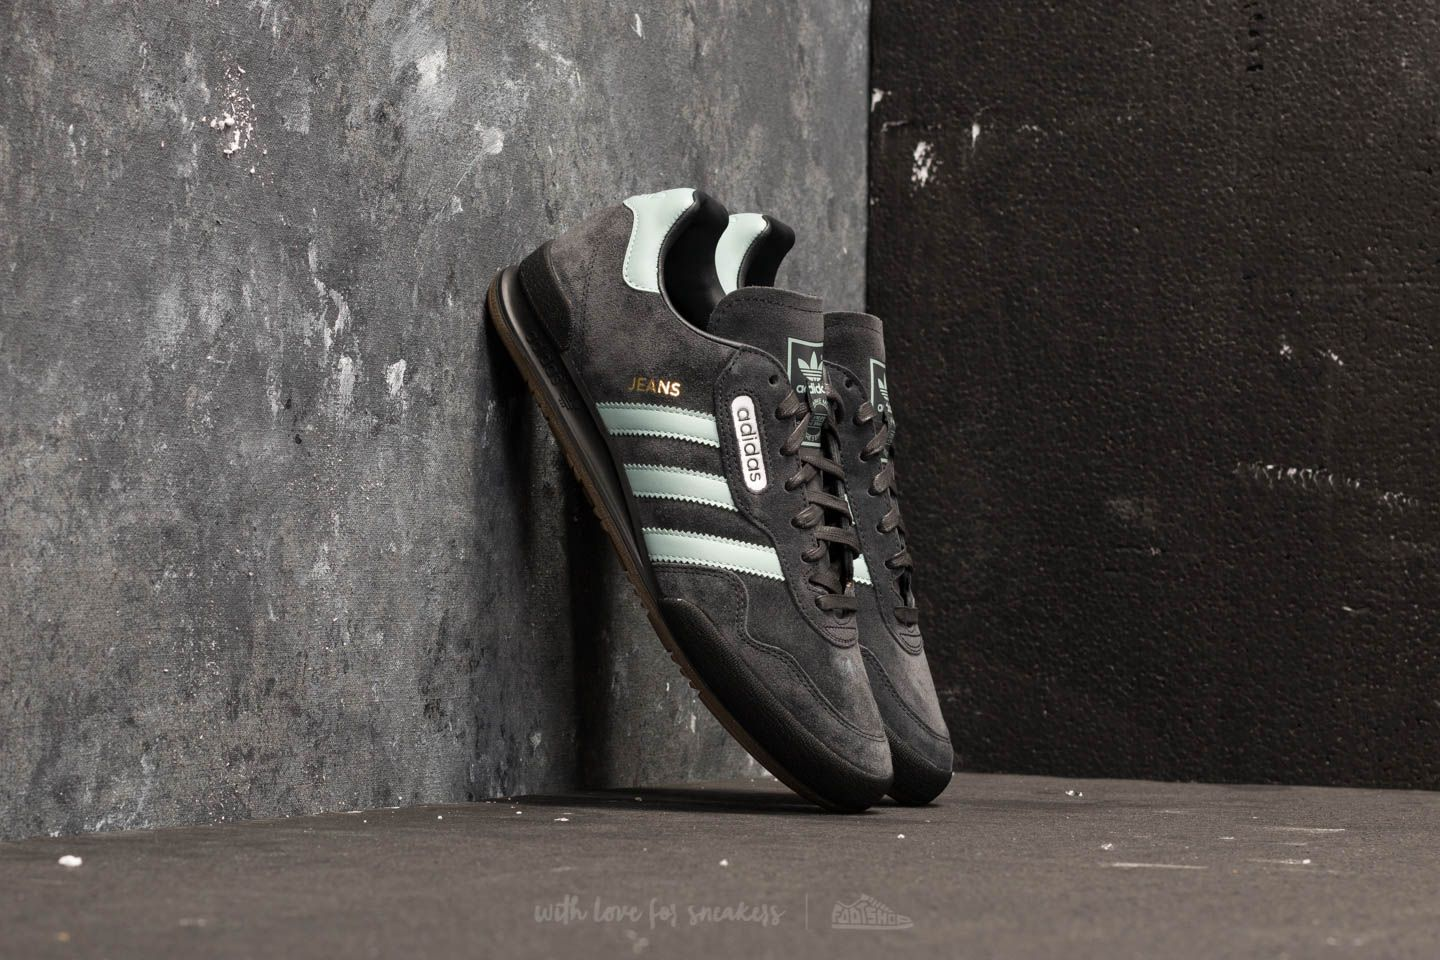 6202c8727d8 adidas Jeans Super Carbon  Tactile Green  Core Black